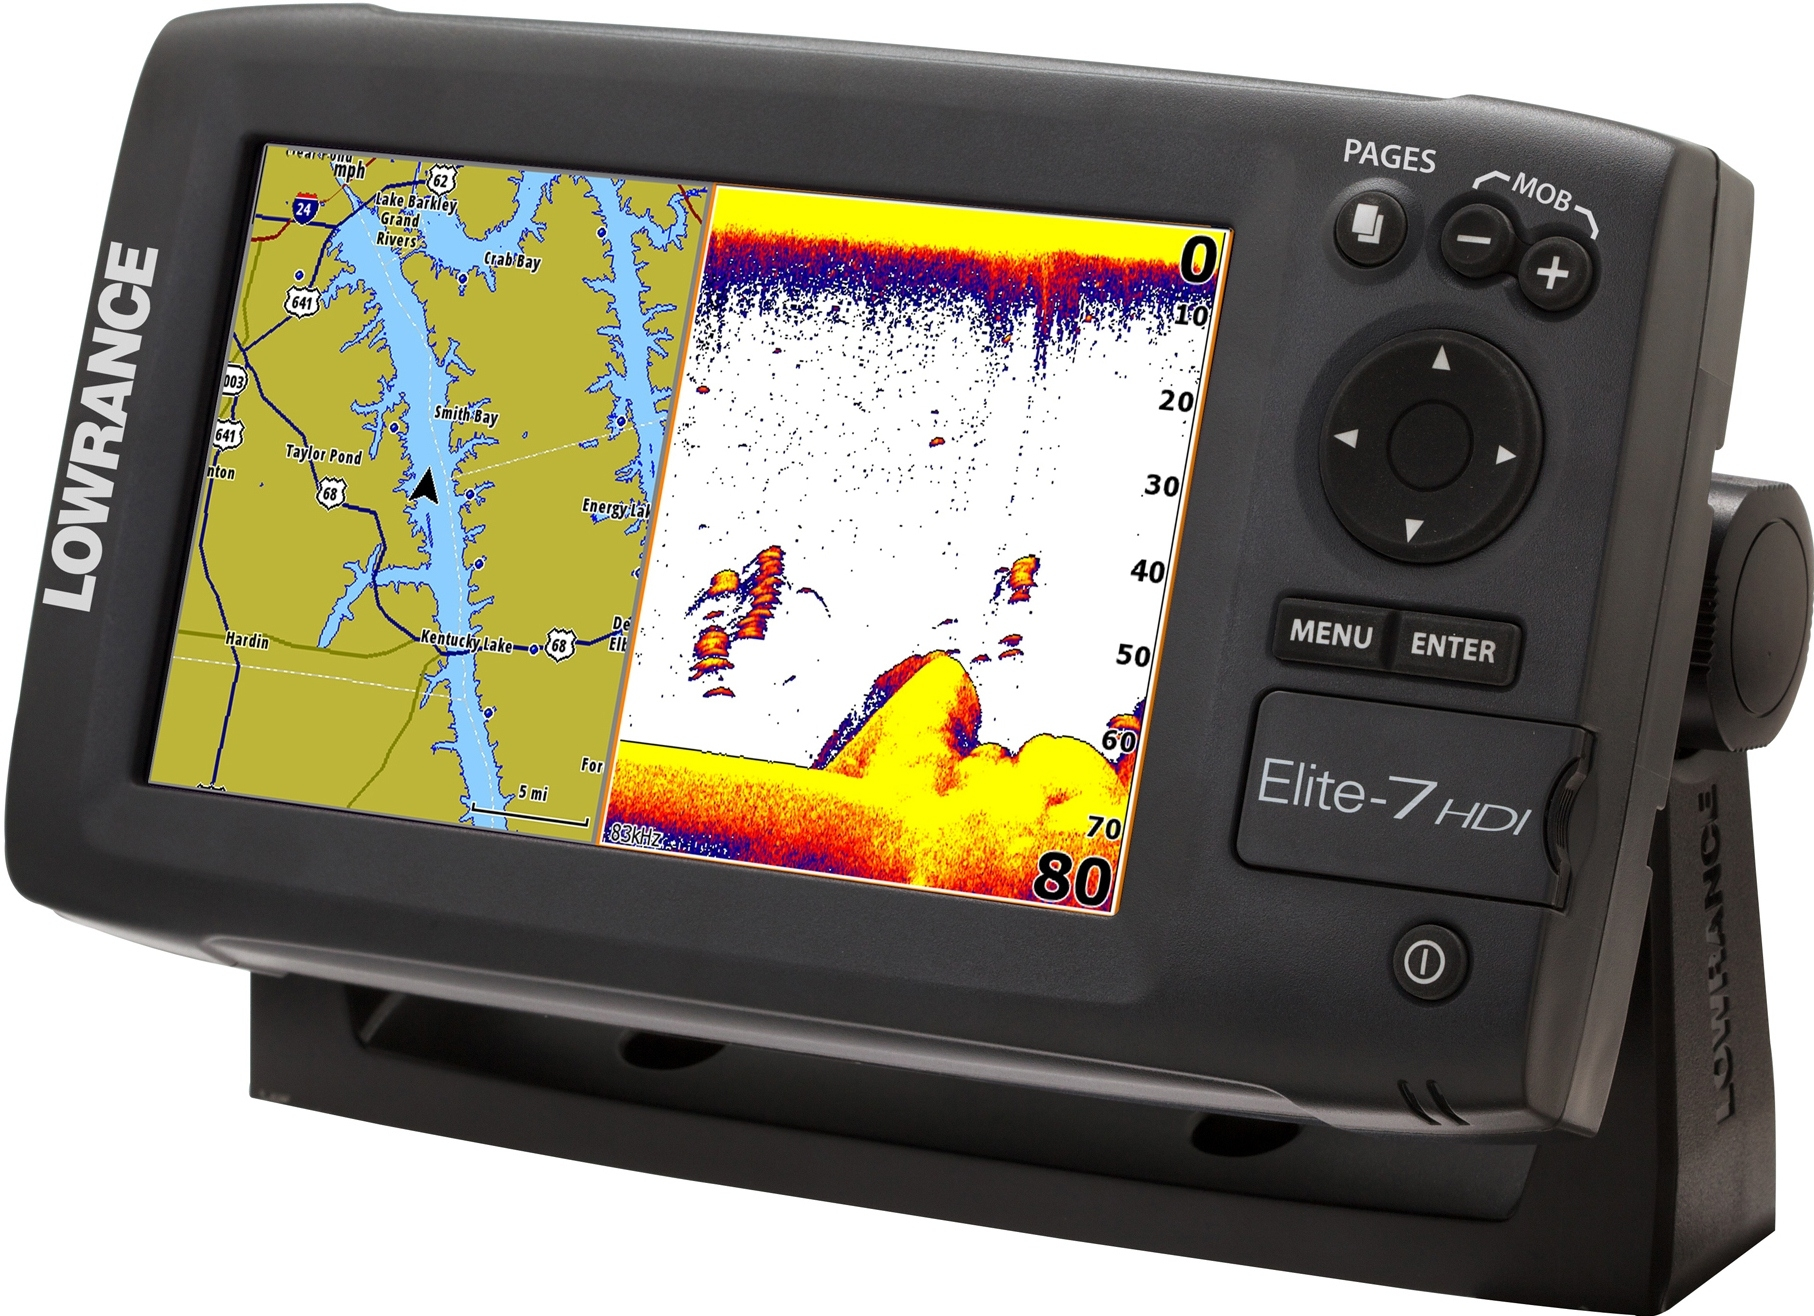 Lowrance Elite 7 HDI Review - Fish Finder Guy